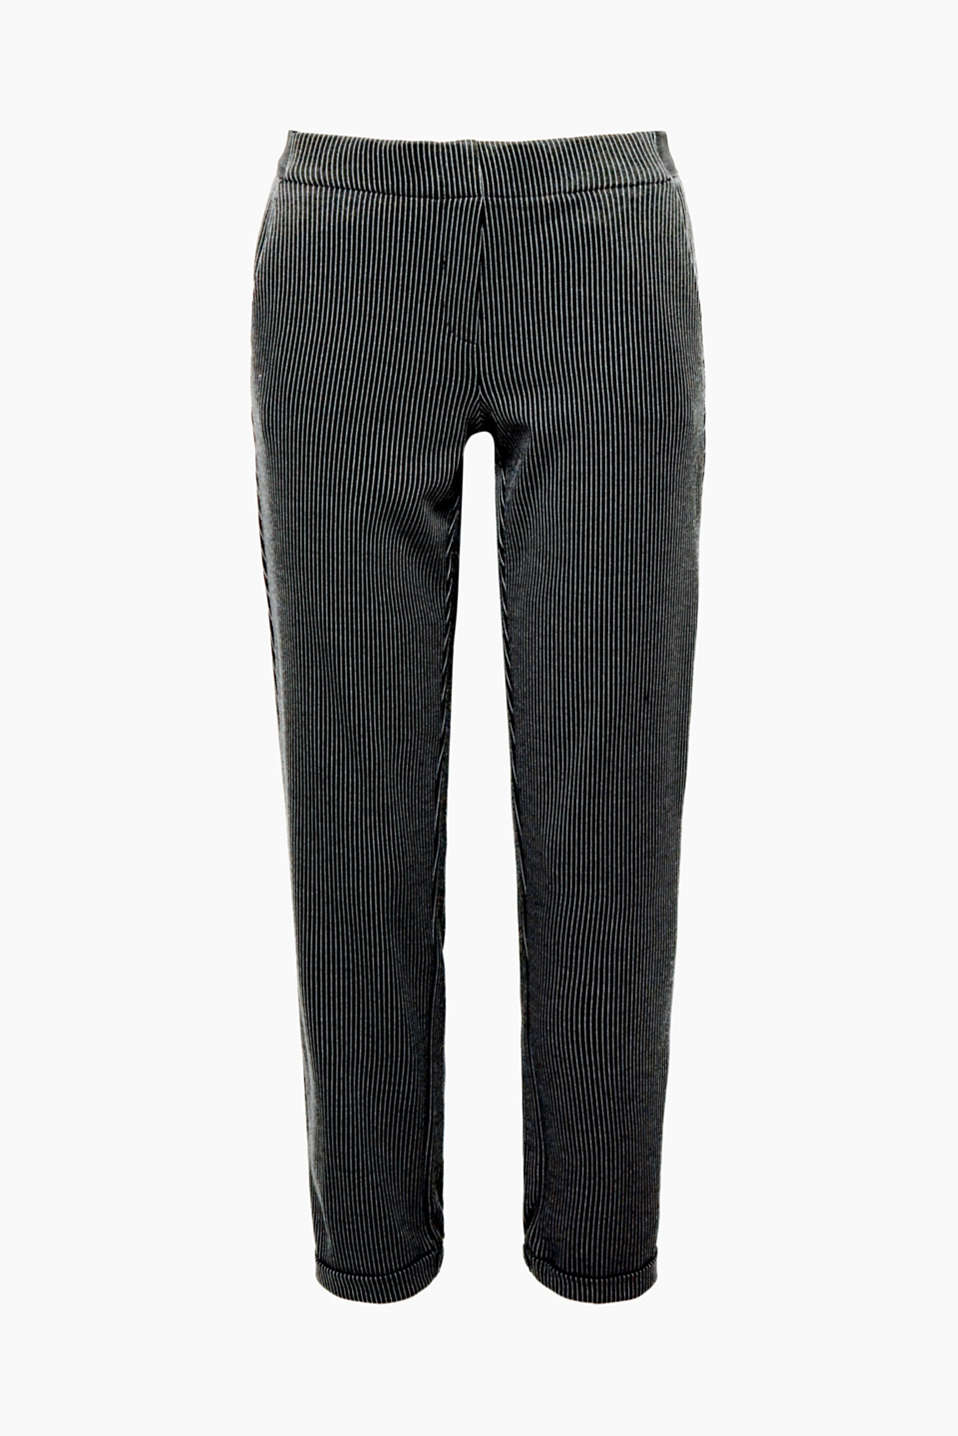 Comfortable, smart style: These trousers give you both soft stretch jersey fabric and fine pinstripes.